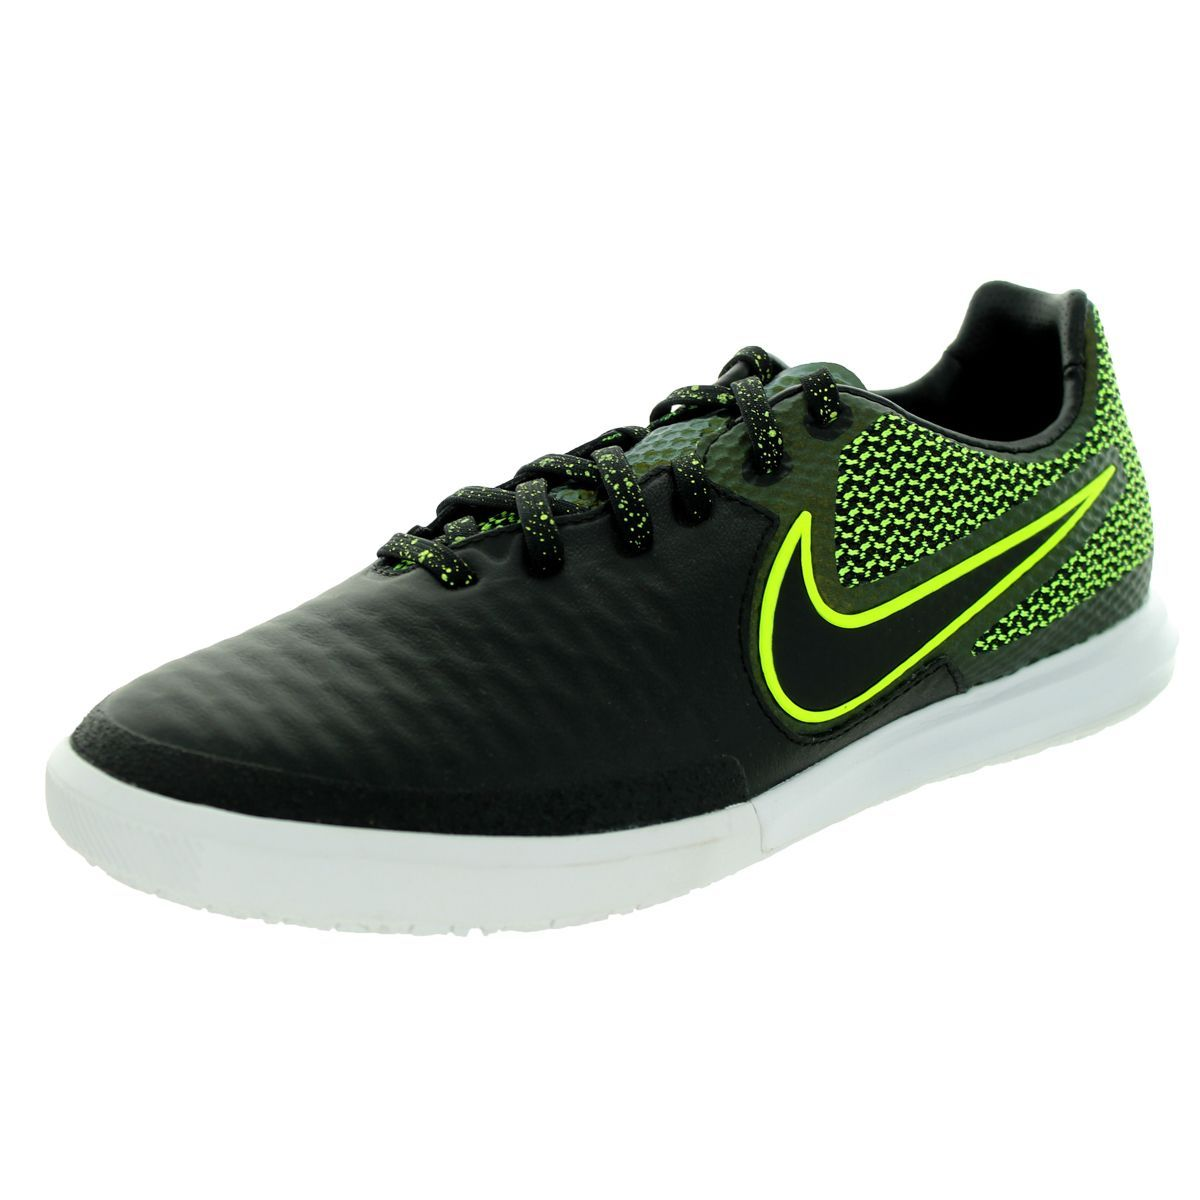 9255919ccc94 Nike Men s Magistax Final Ic   Volt White Indoor Soccer Shoe